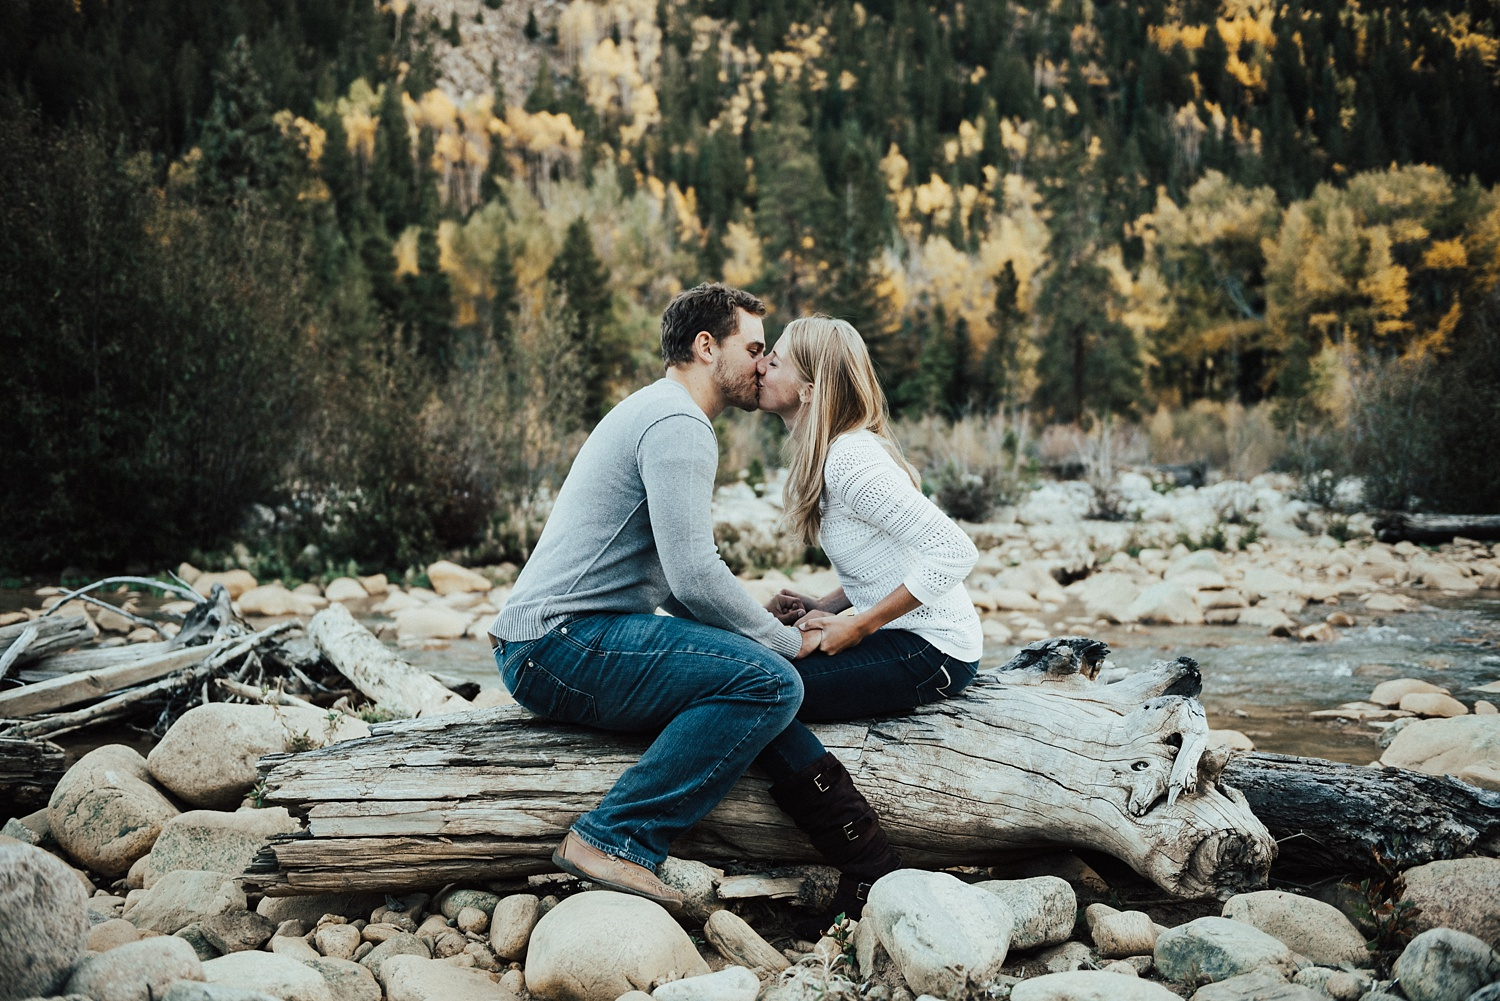 Nate_shepard_photography_engagement_wedding_photographer_denver_colorado_0289.jpg